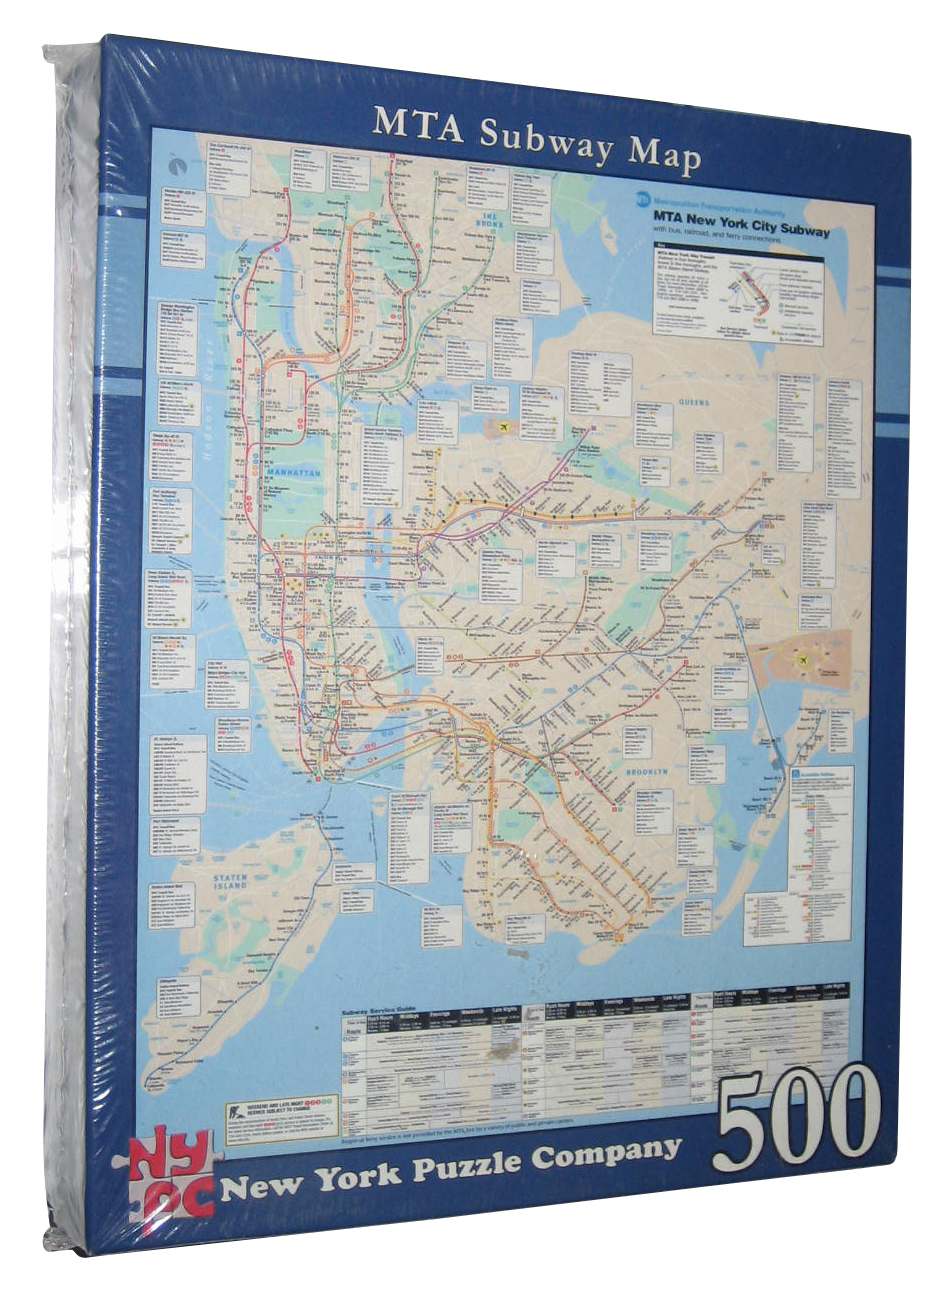 Nyc Subway Map Puzzle.Details About Mta Subway Map New York Company City Bus Railroad Ferry 500pc Puzzle